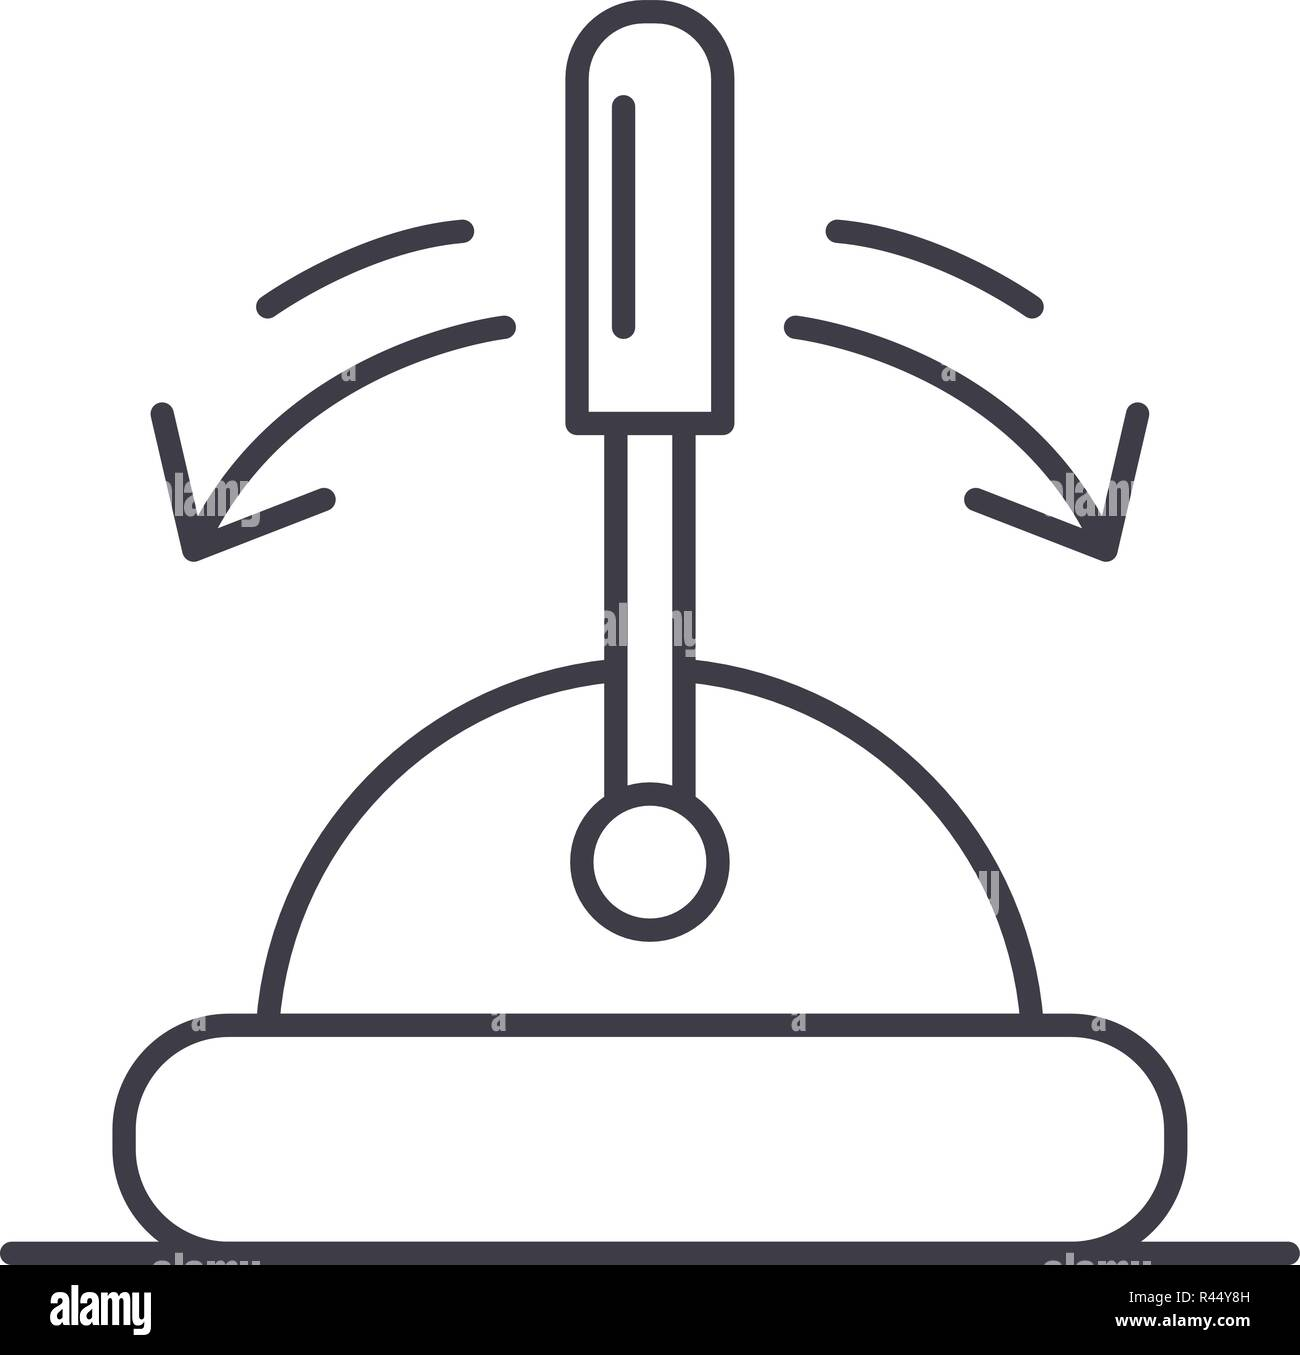 Toggle switch line icon concept. Toggle switch vector linear illustration, symbol, sign Stock Vector